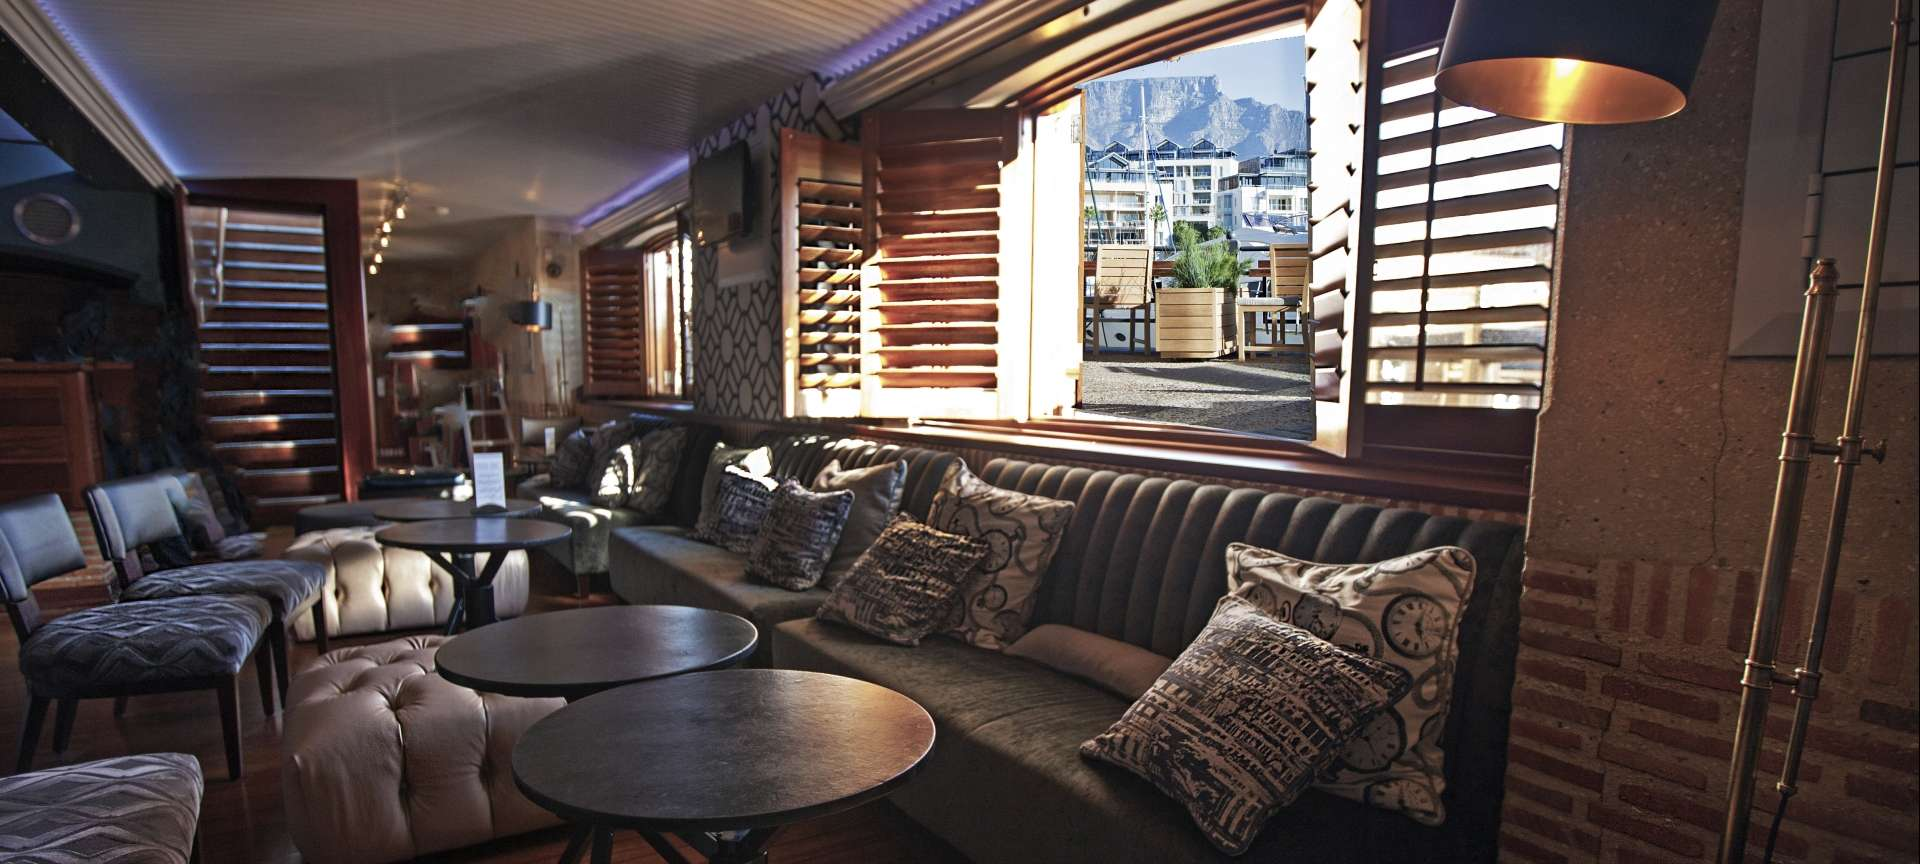 The Bascule Bar in Cape Grace - a luxury hotel in the V&A Waterfront